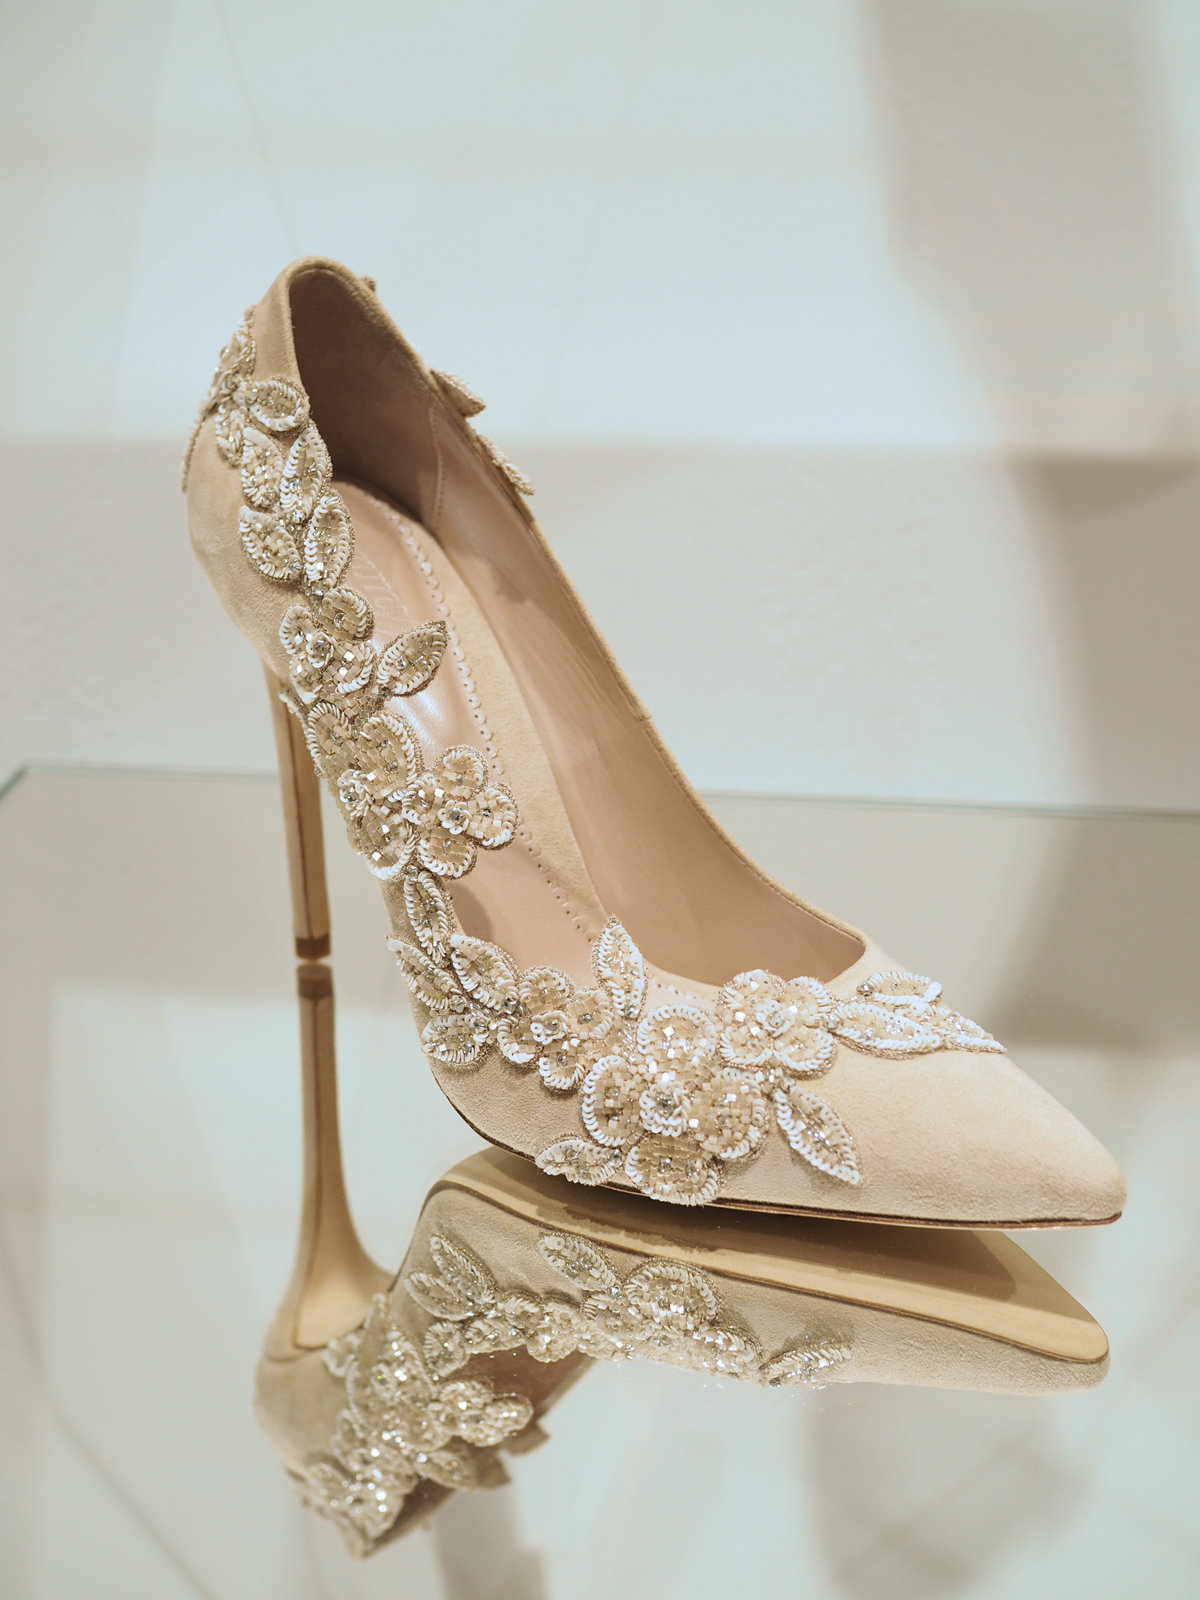 2cac7f99c7a wpid emmy london chelsea boutique - NEW  Emmy London Chelsea Collection +  Opening of New. The Isadora shoe